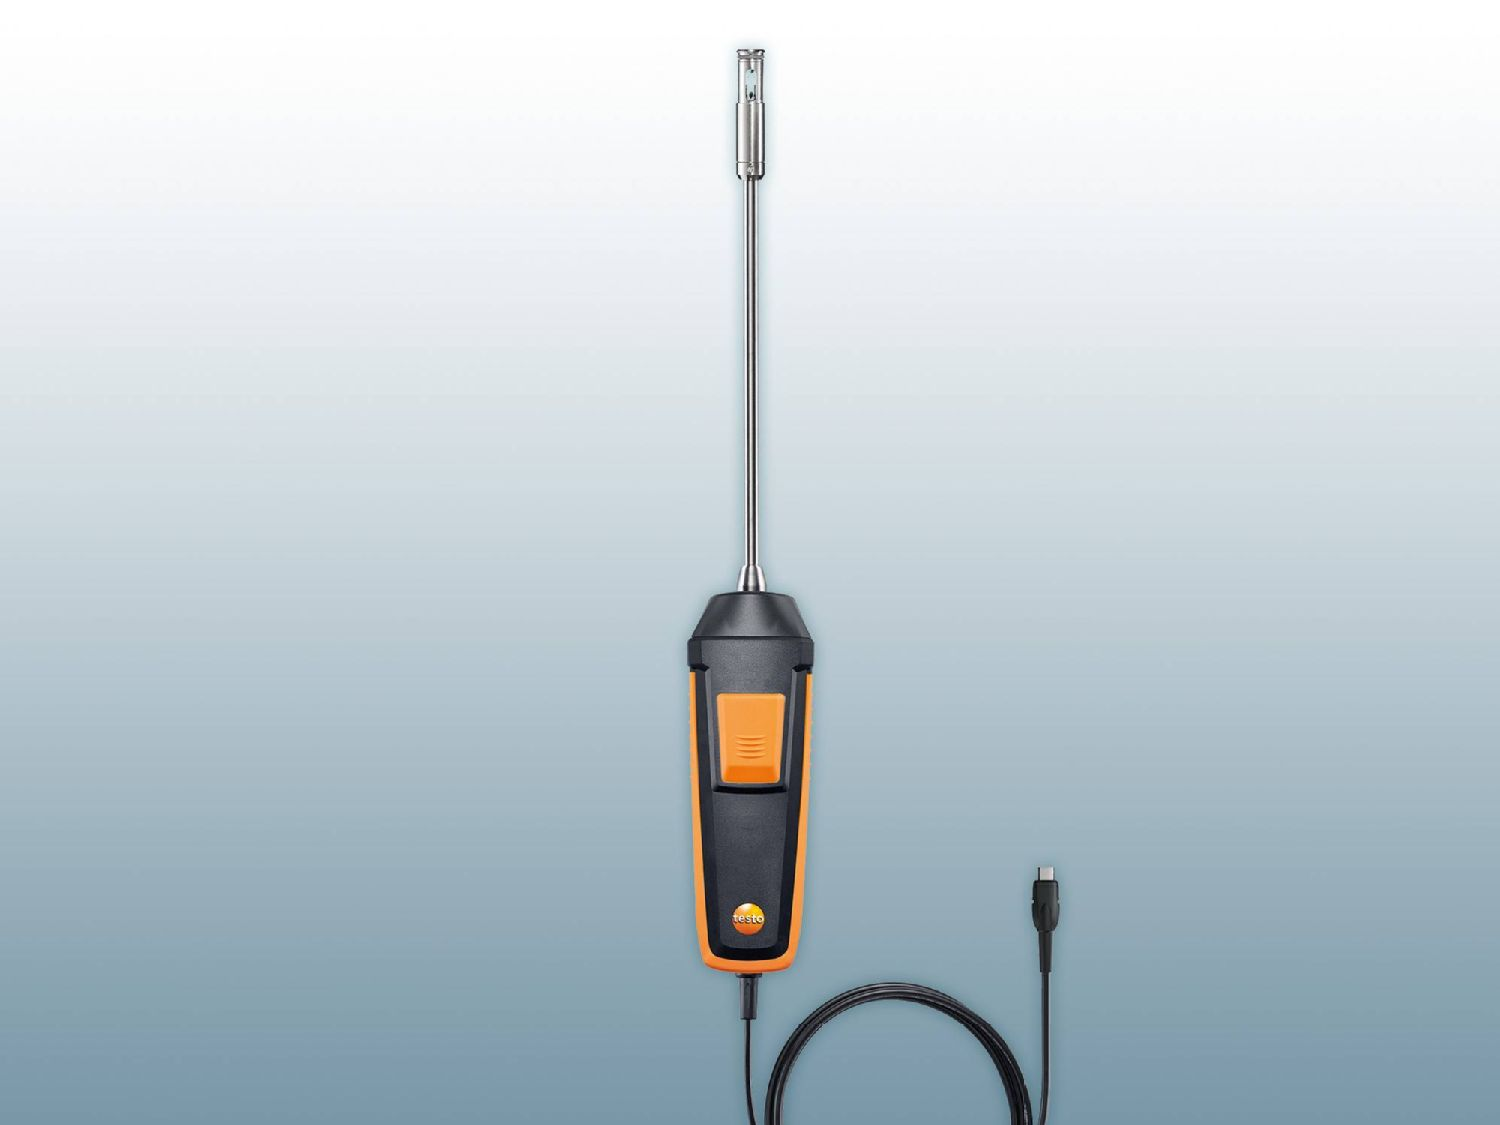 0635-1052-Fume-cupboard-probe-fixed-cable-2000x1500px.jpg